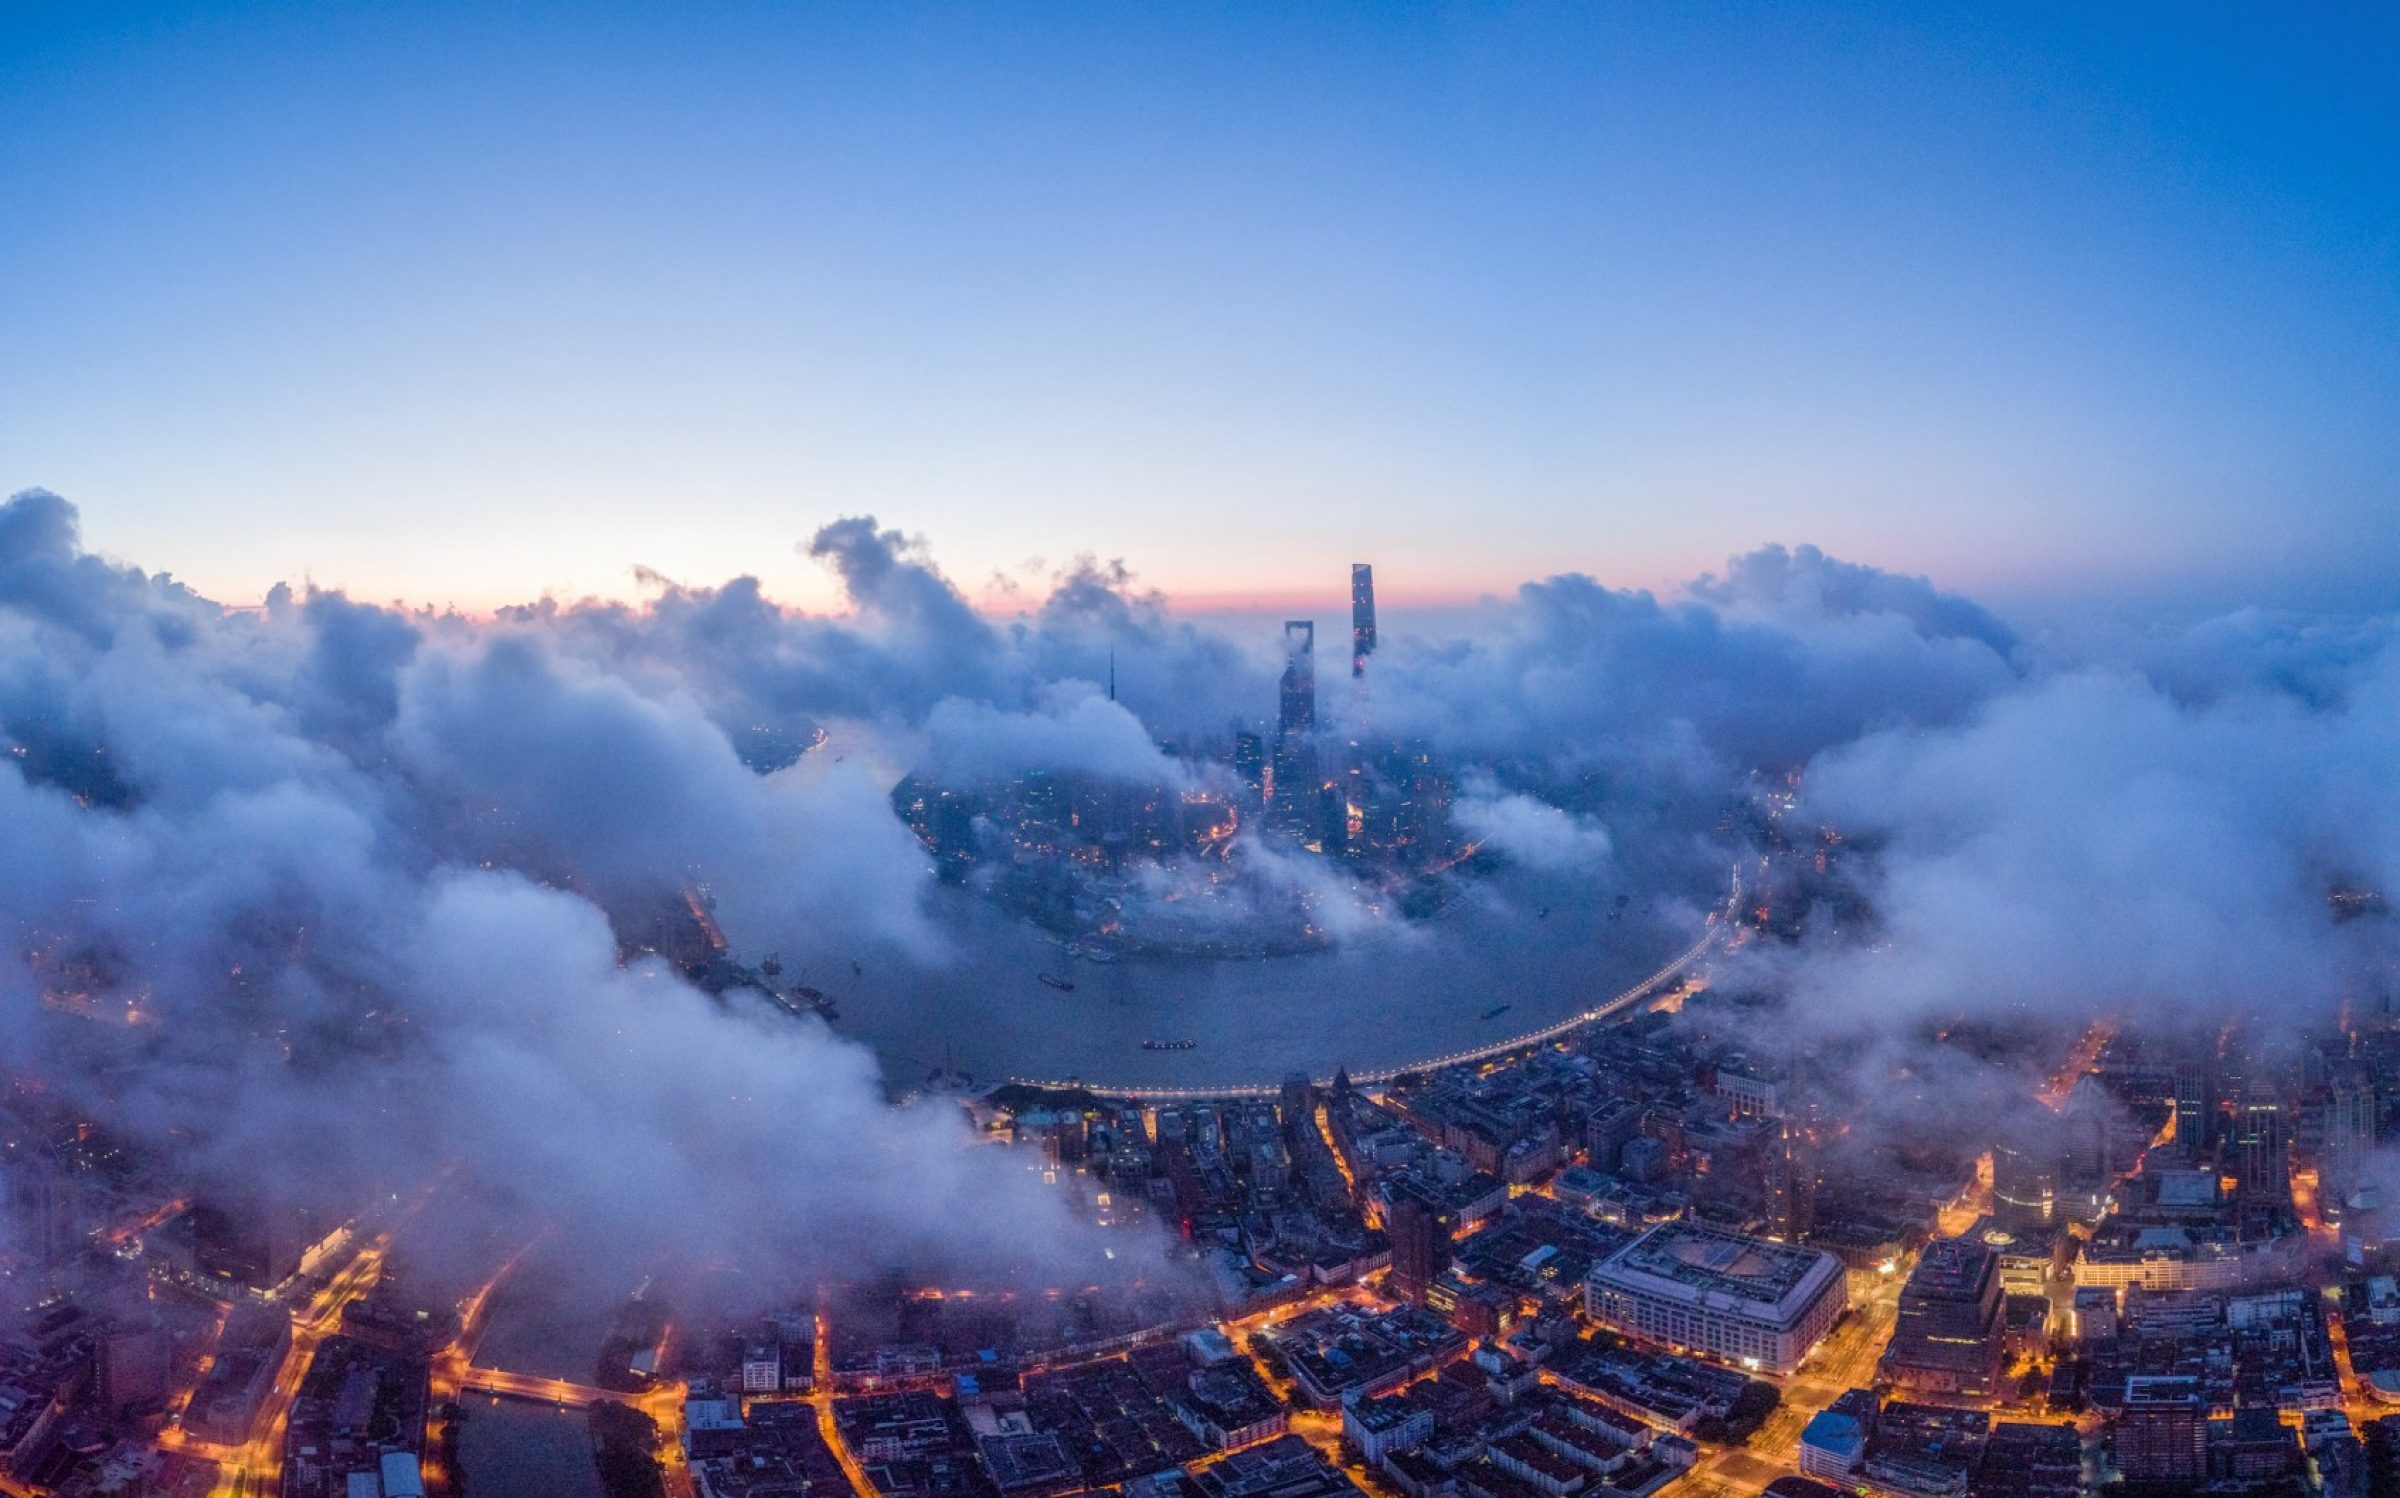 Central Shanghai, China's commercial centre, in low cloud cover. Credit: Xu Feng / VCG via Getty Images.